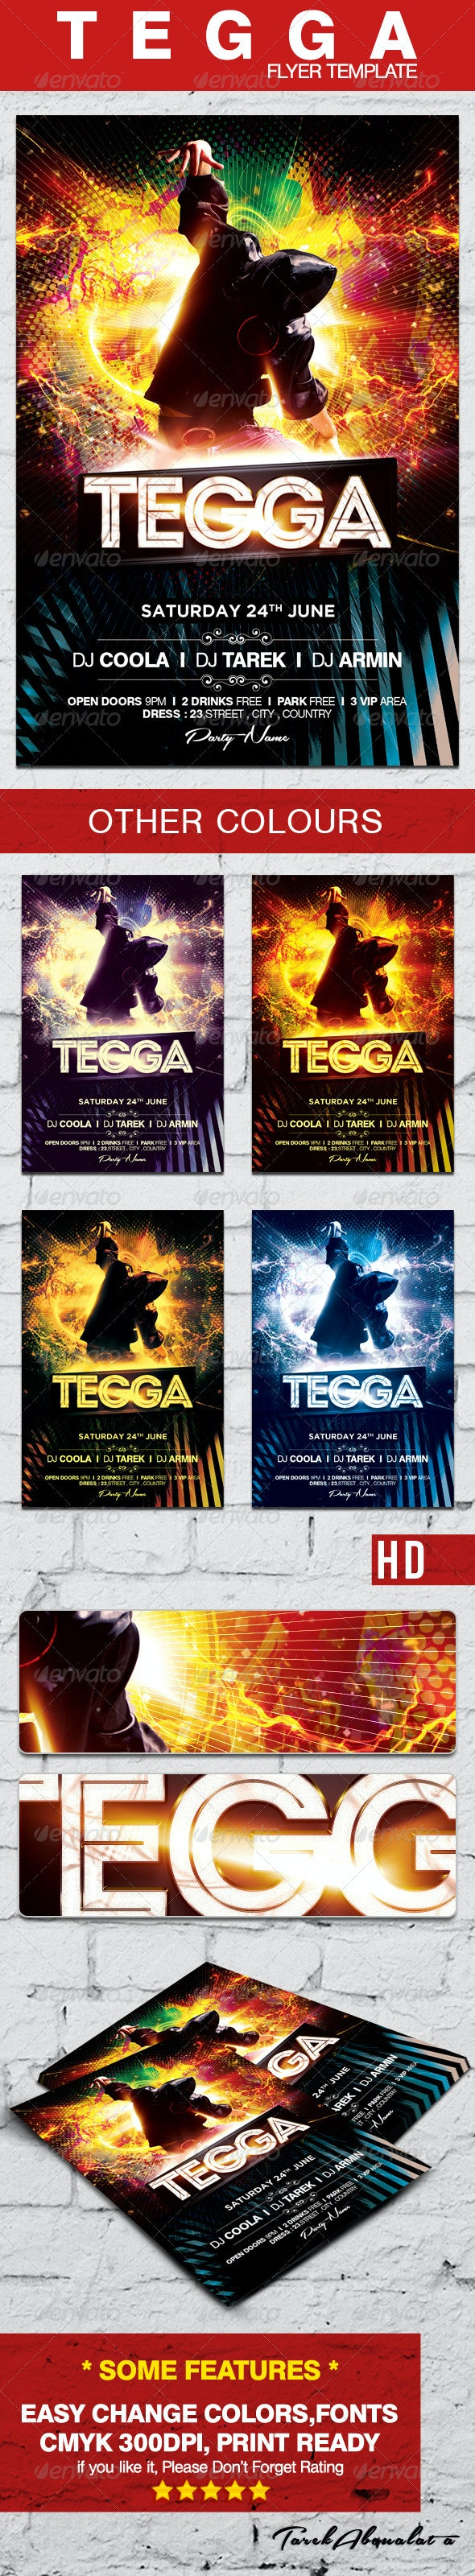 Tegga Flyer Template - Clubs & Parties Events